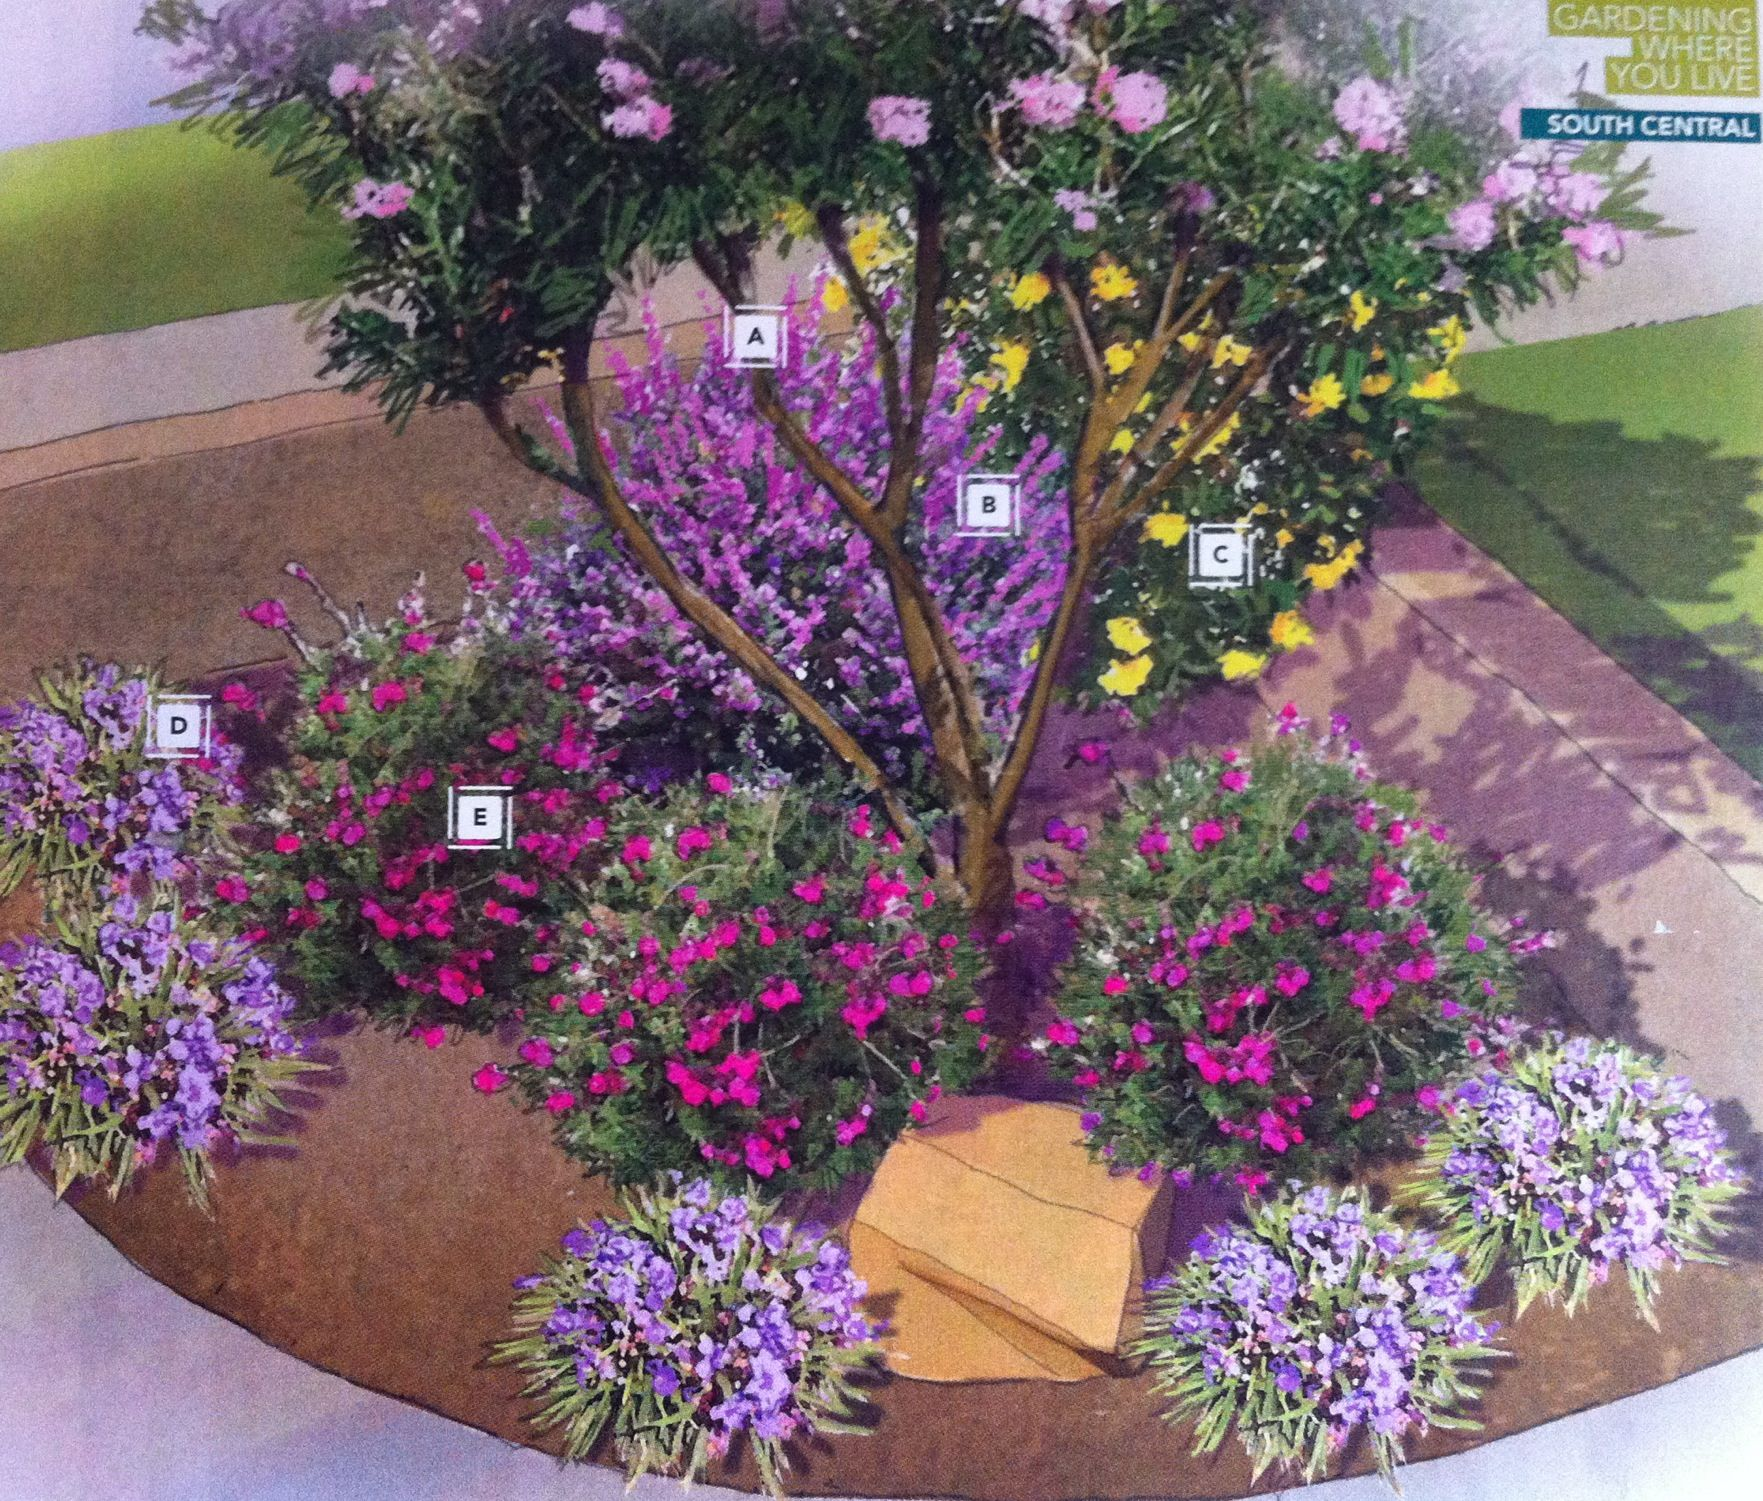 Cozy Corner Garden Plan By Lowes: (A) Desert Willow (B) Texas